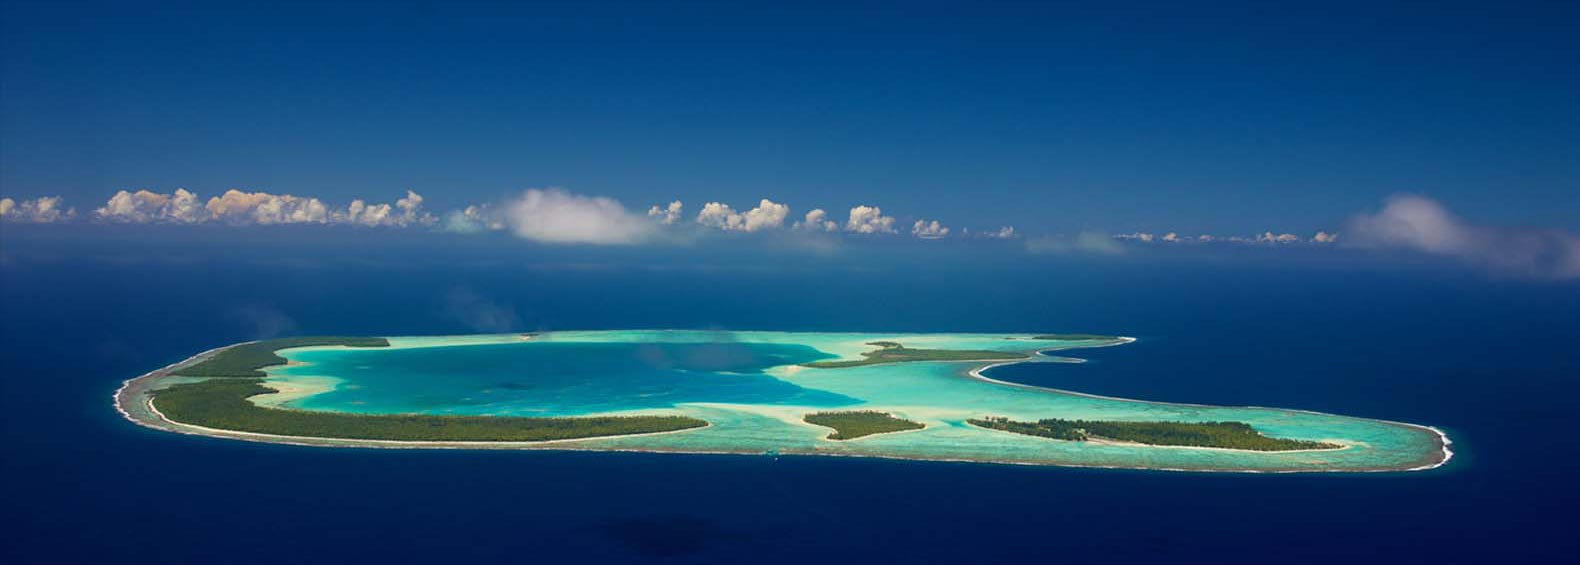 Tahiti Vacation Rentals - Come Visit Private Island Resort